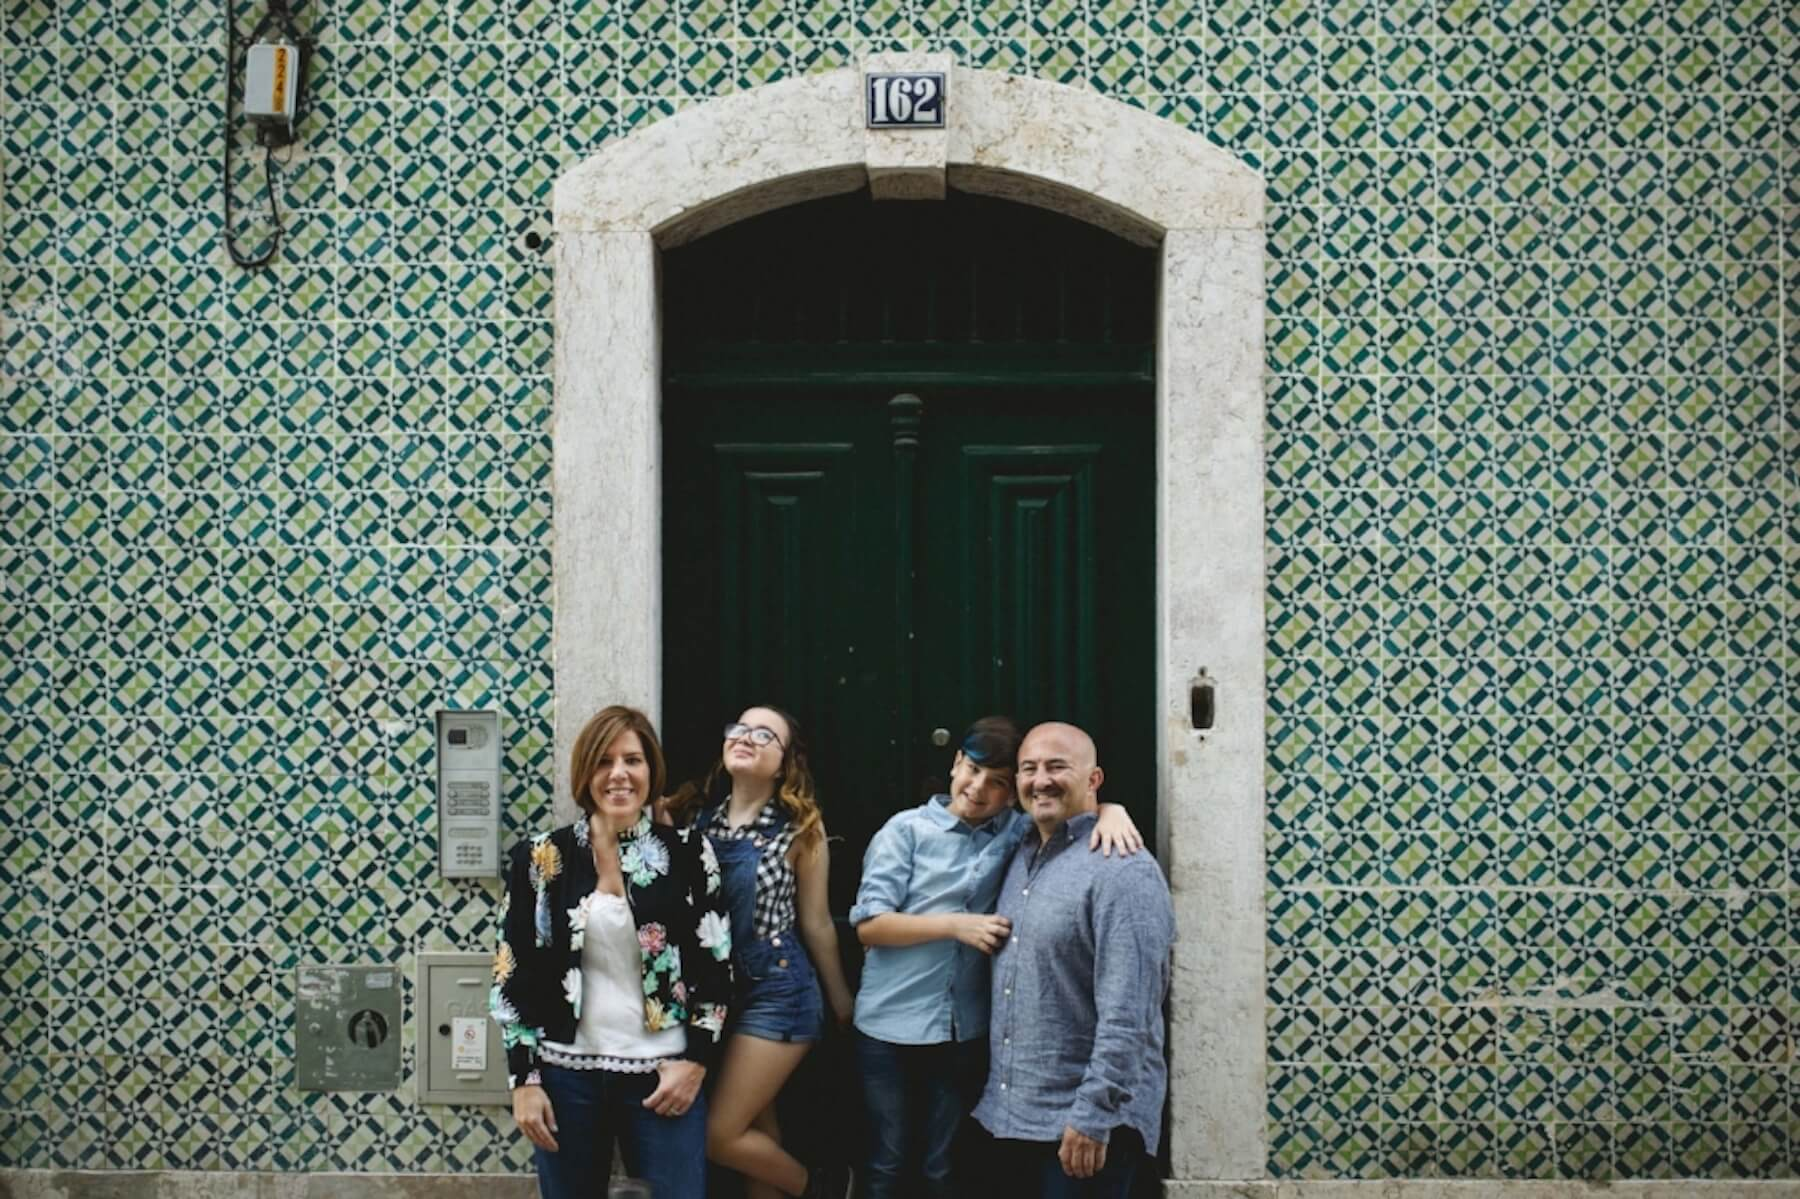 Family of four with two pre-teen children standing in front of building with green and blue Portuguese tile in Lisbon, Portugal